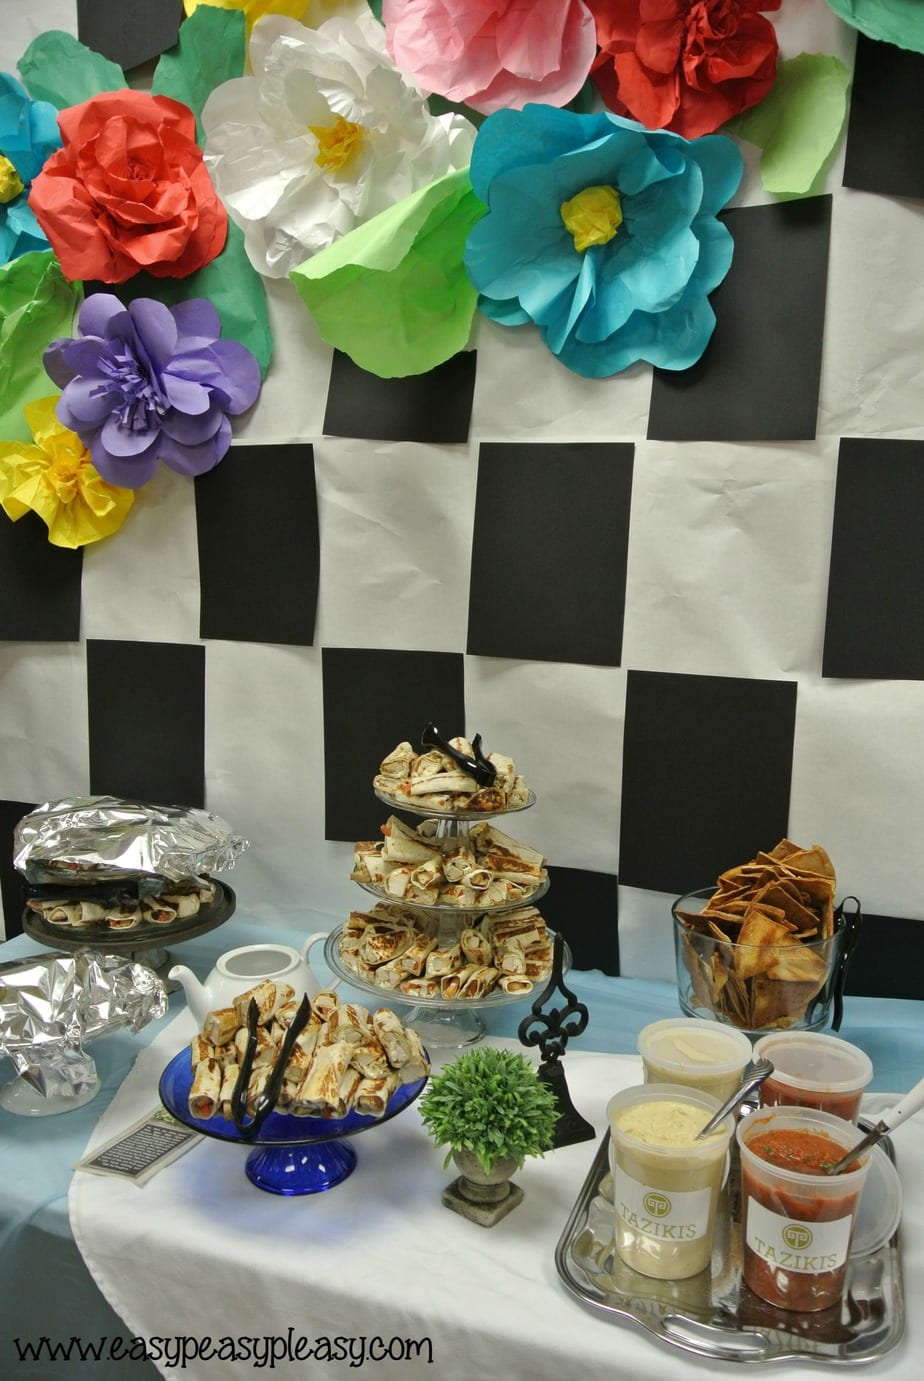 Alice in Wonderland Teacher Appreciation catered by Tazikis